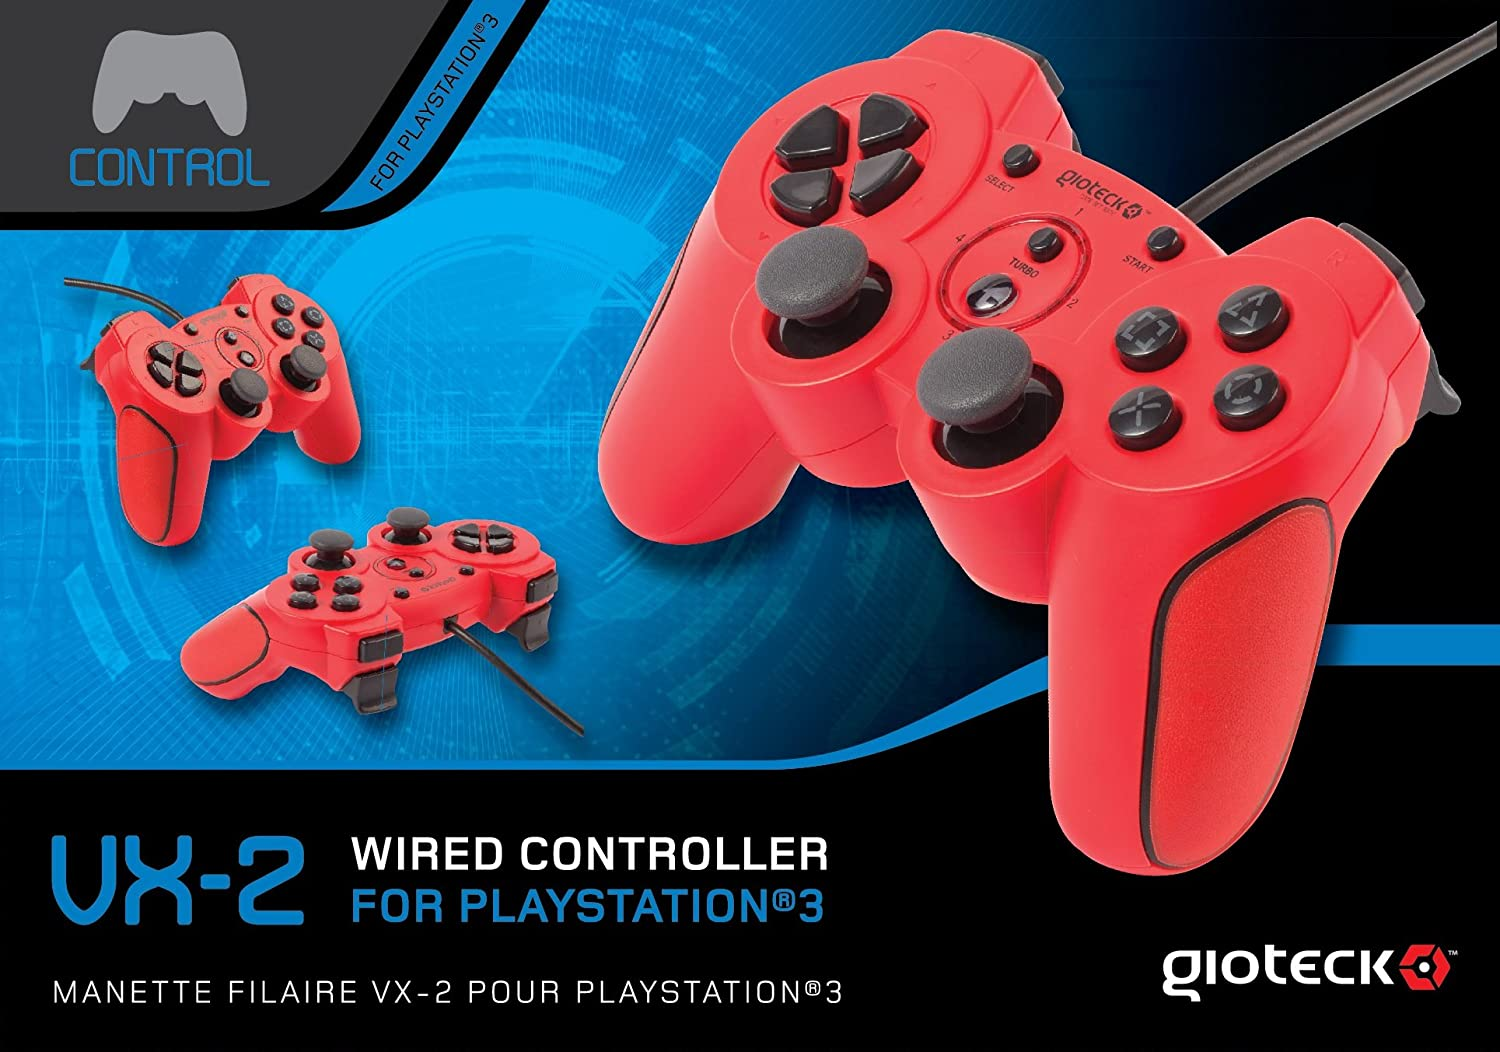 Amazon.com: Gioteck VX-2 Wired Controller - Red (PS3): Video Games